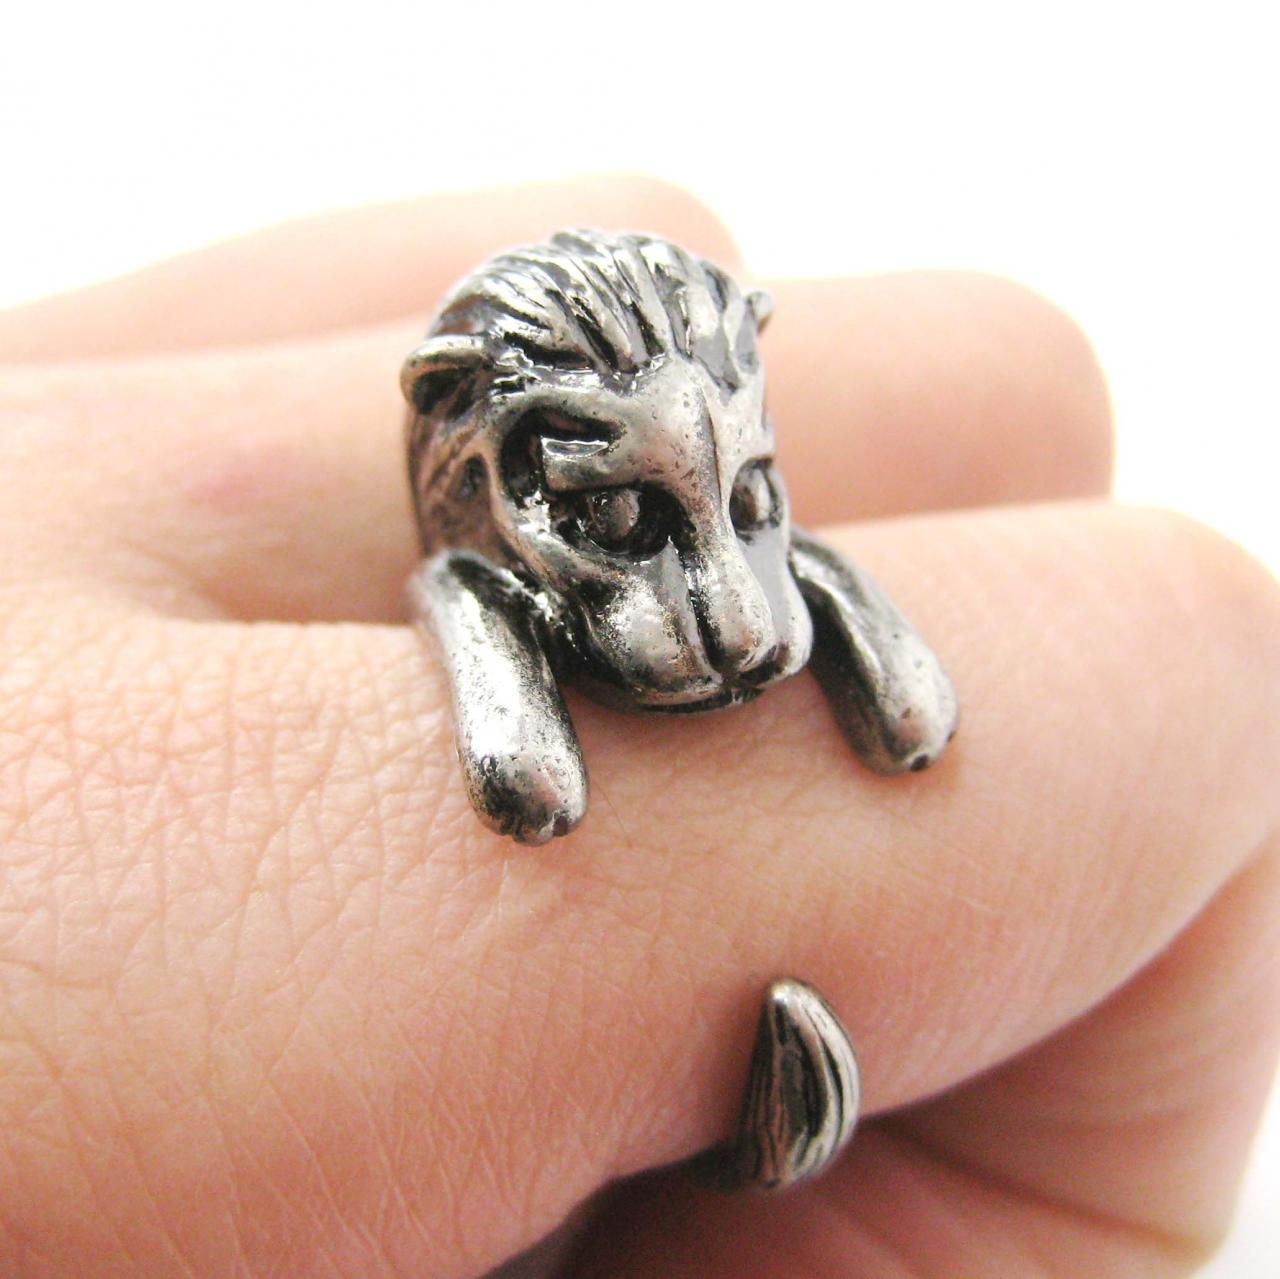 Lion Shaped Animal Wrap Around Ring in Silver - Sizes 7 to 9 Available